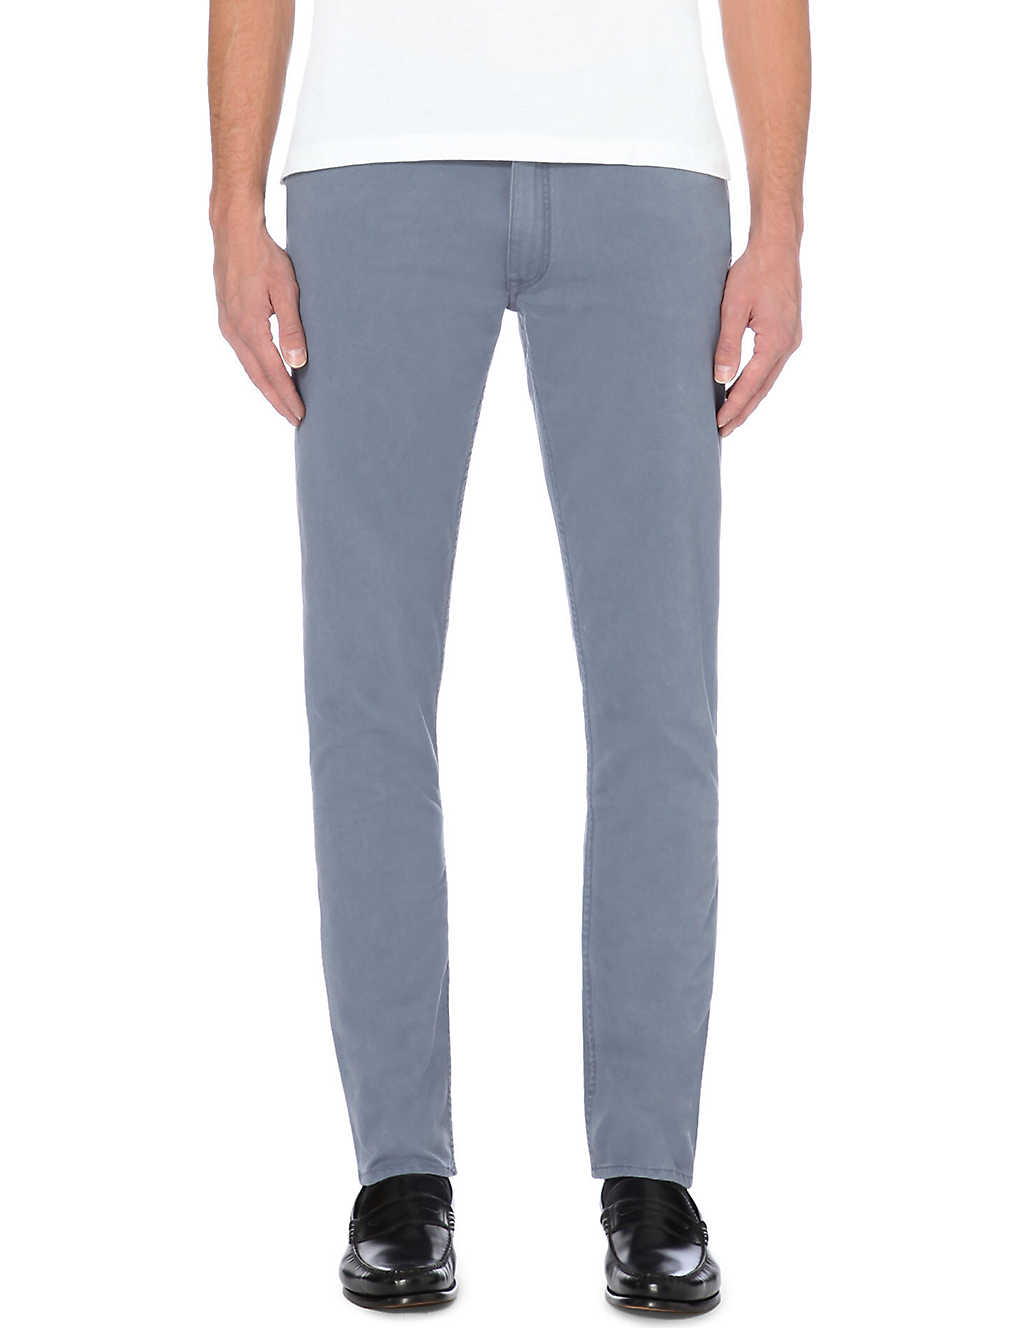 d5058a856 POLO RALPH LAUREN - Sullivan slim-fit tapered jeans